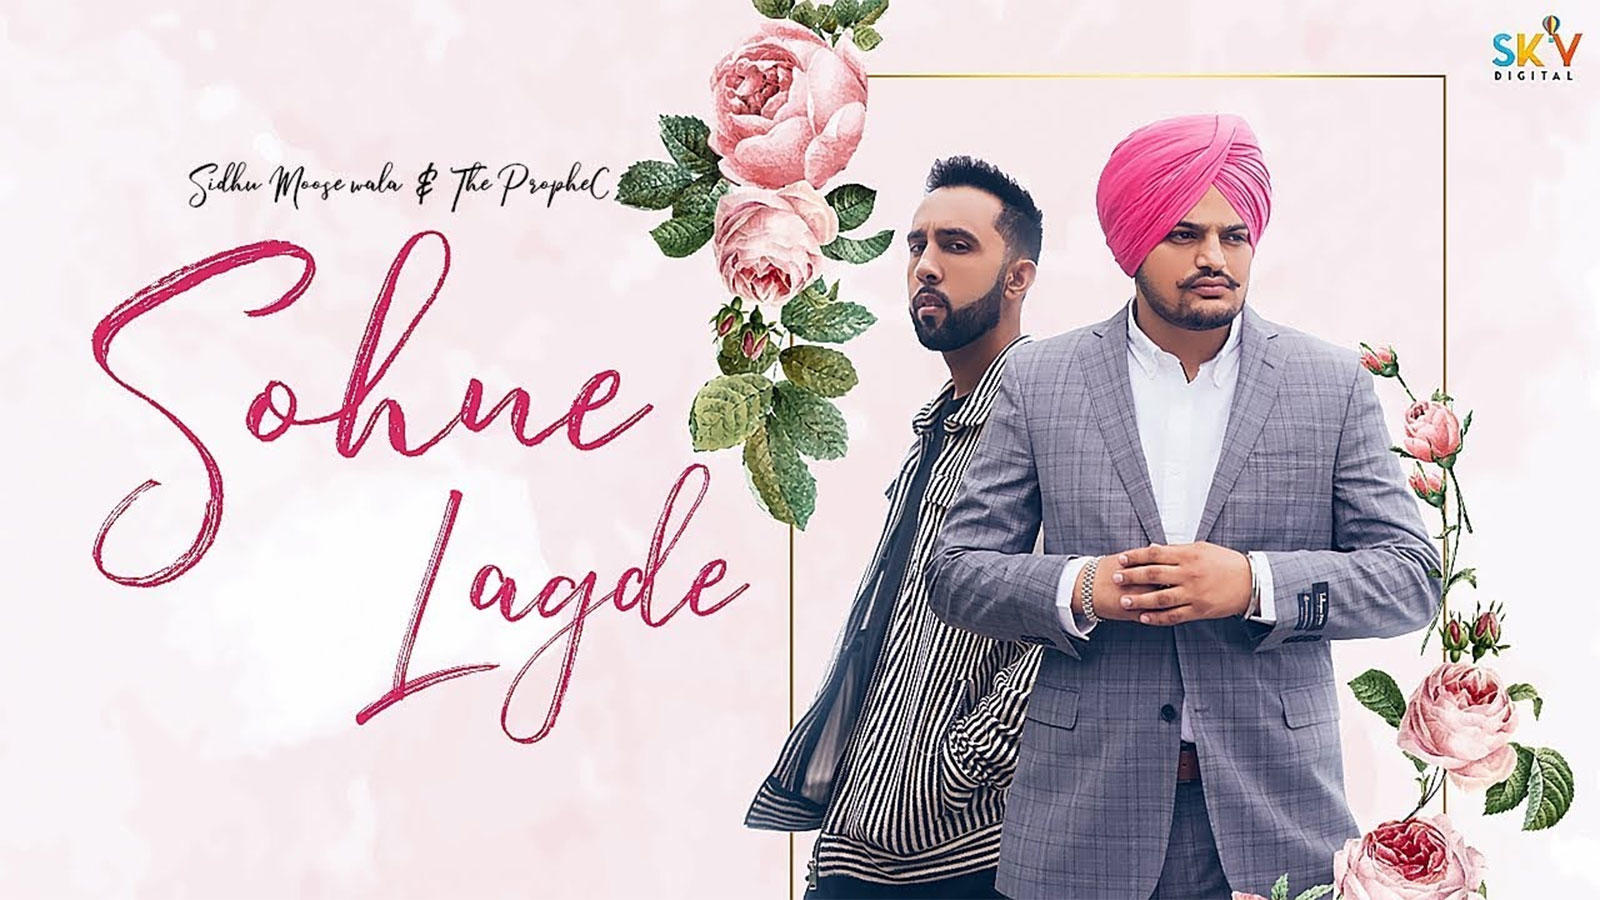 Latest Punjabi Song 'Sohne Lagde' (Audio) Sung By Sidhu Moose Wala and The  PropheC